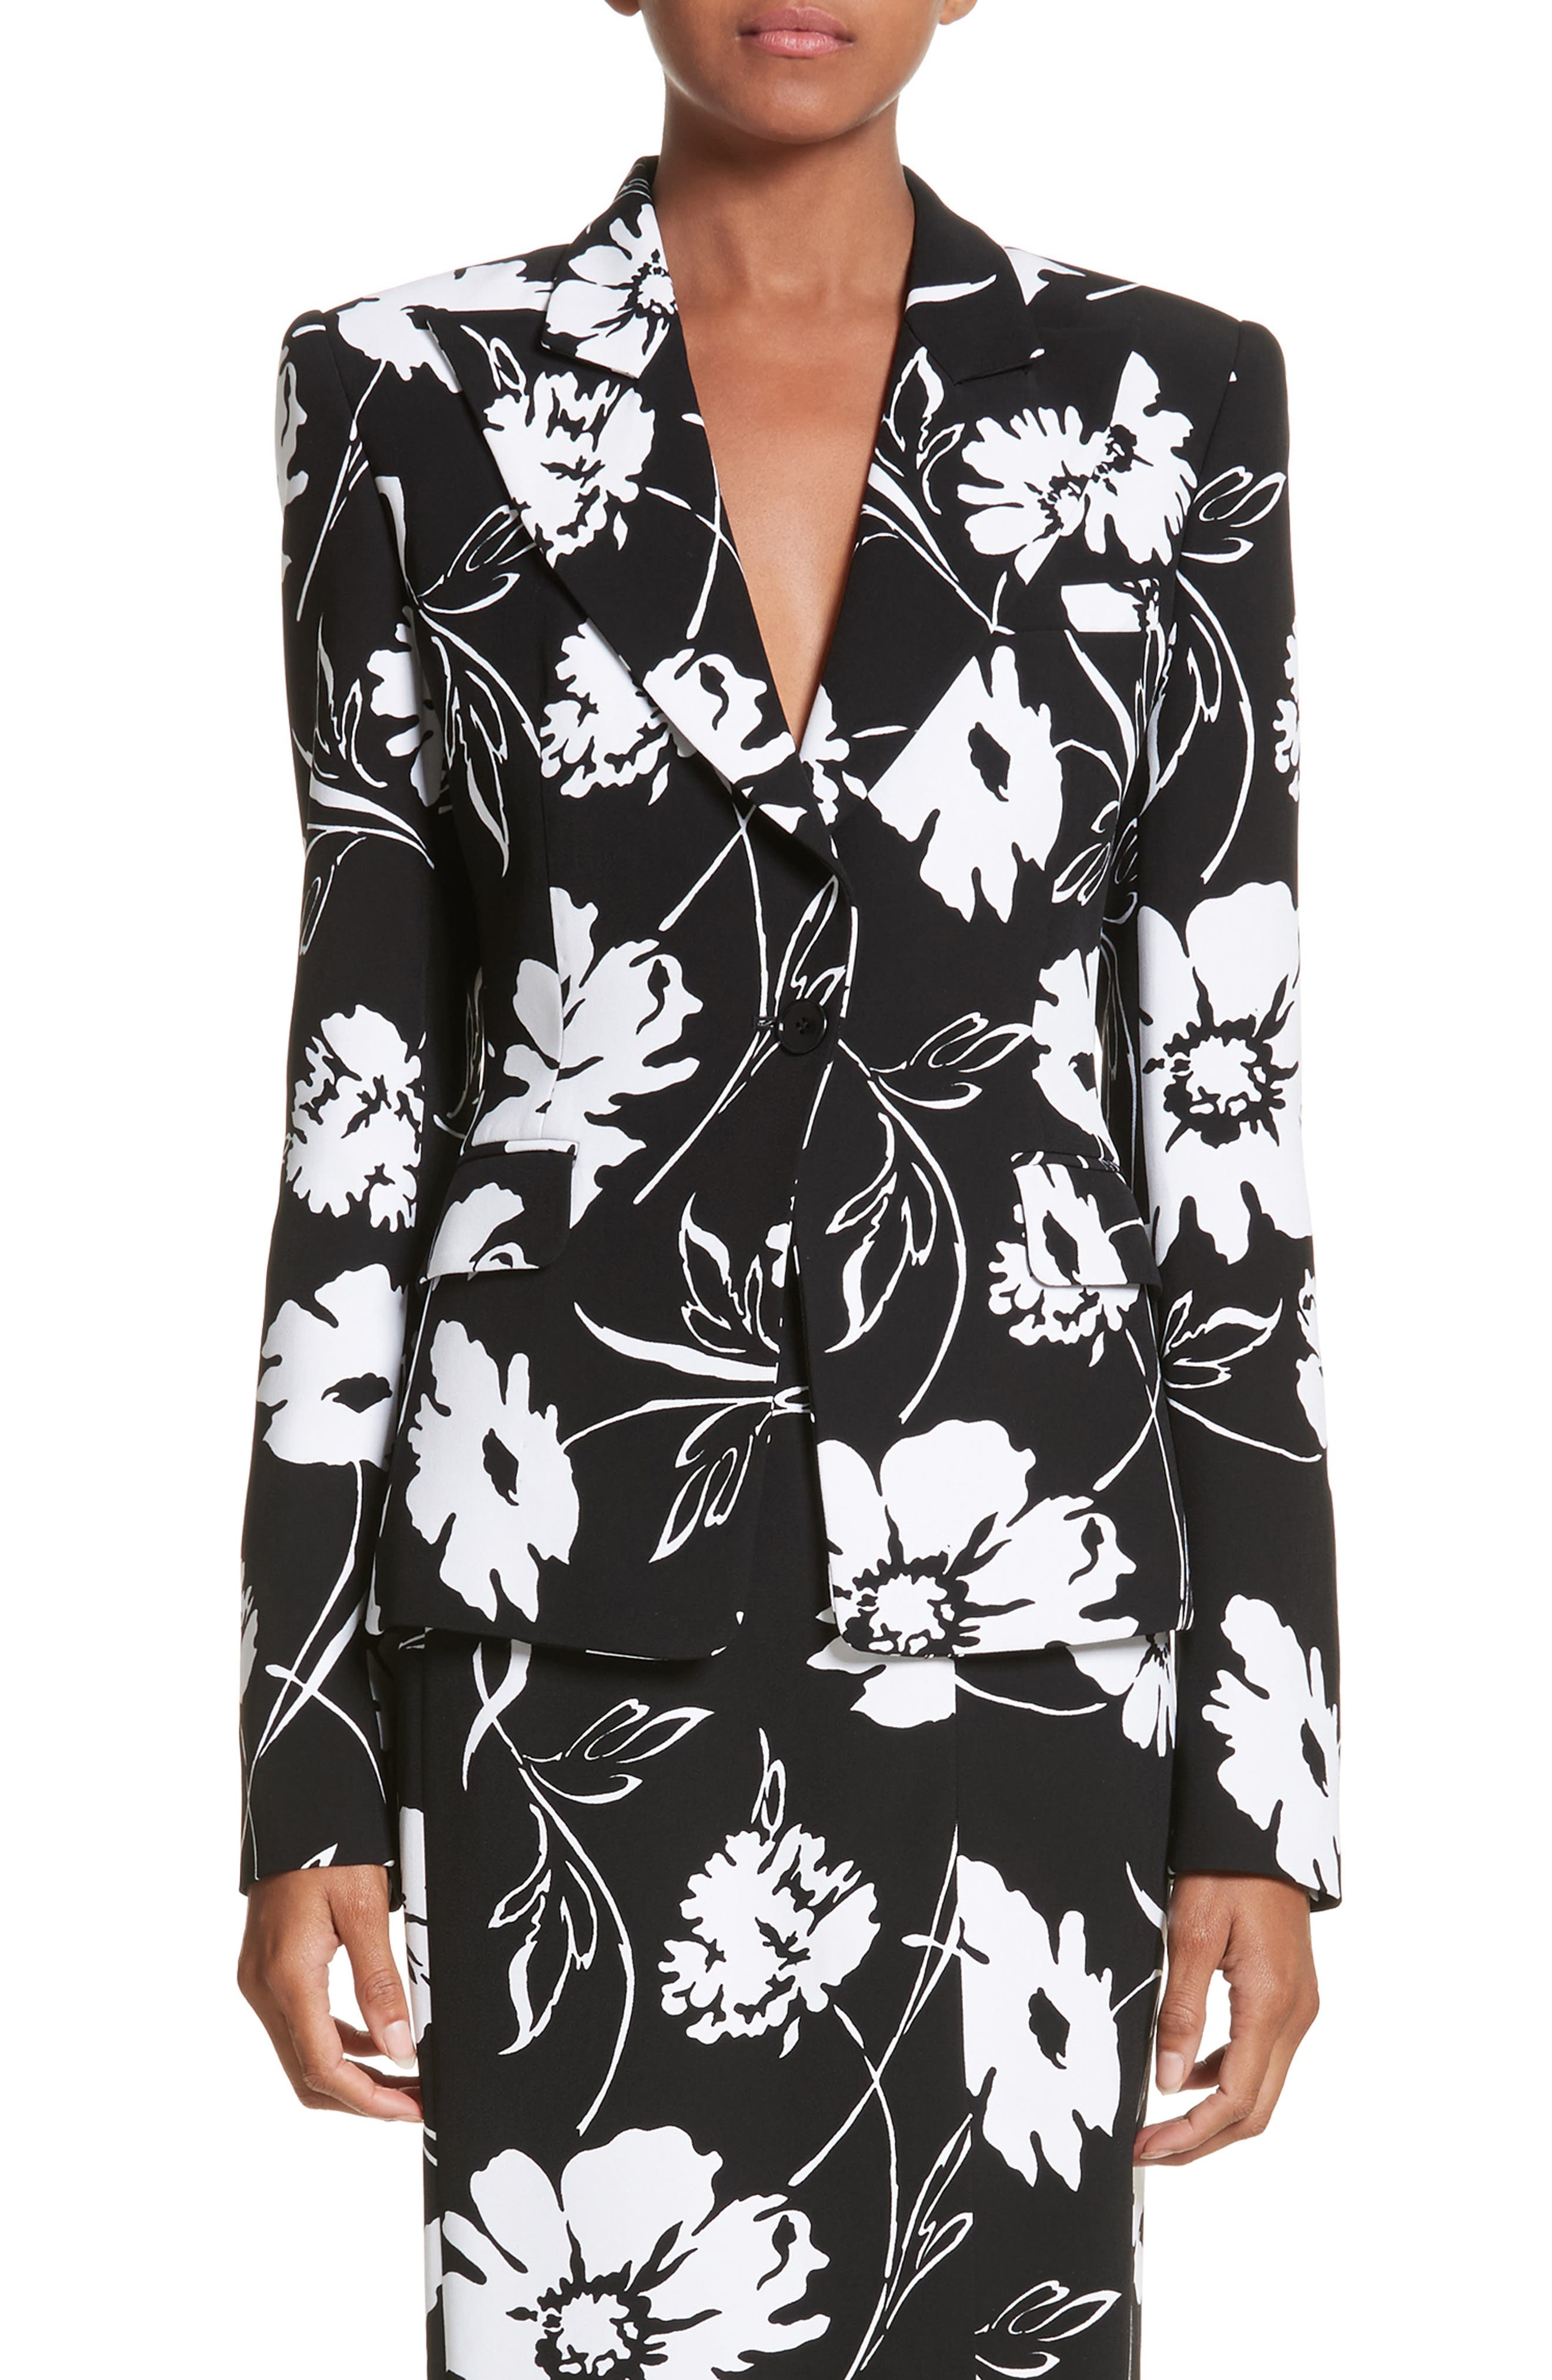 Floral Print Blazer,                             Main thumbnail 1, color,                             Black / White